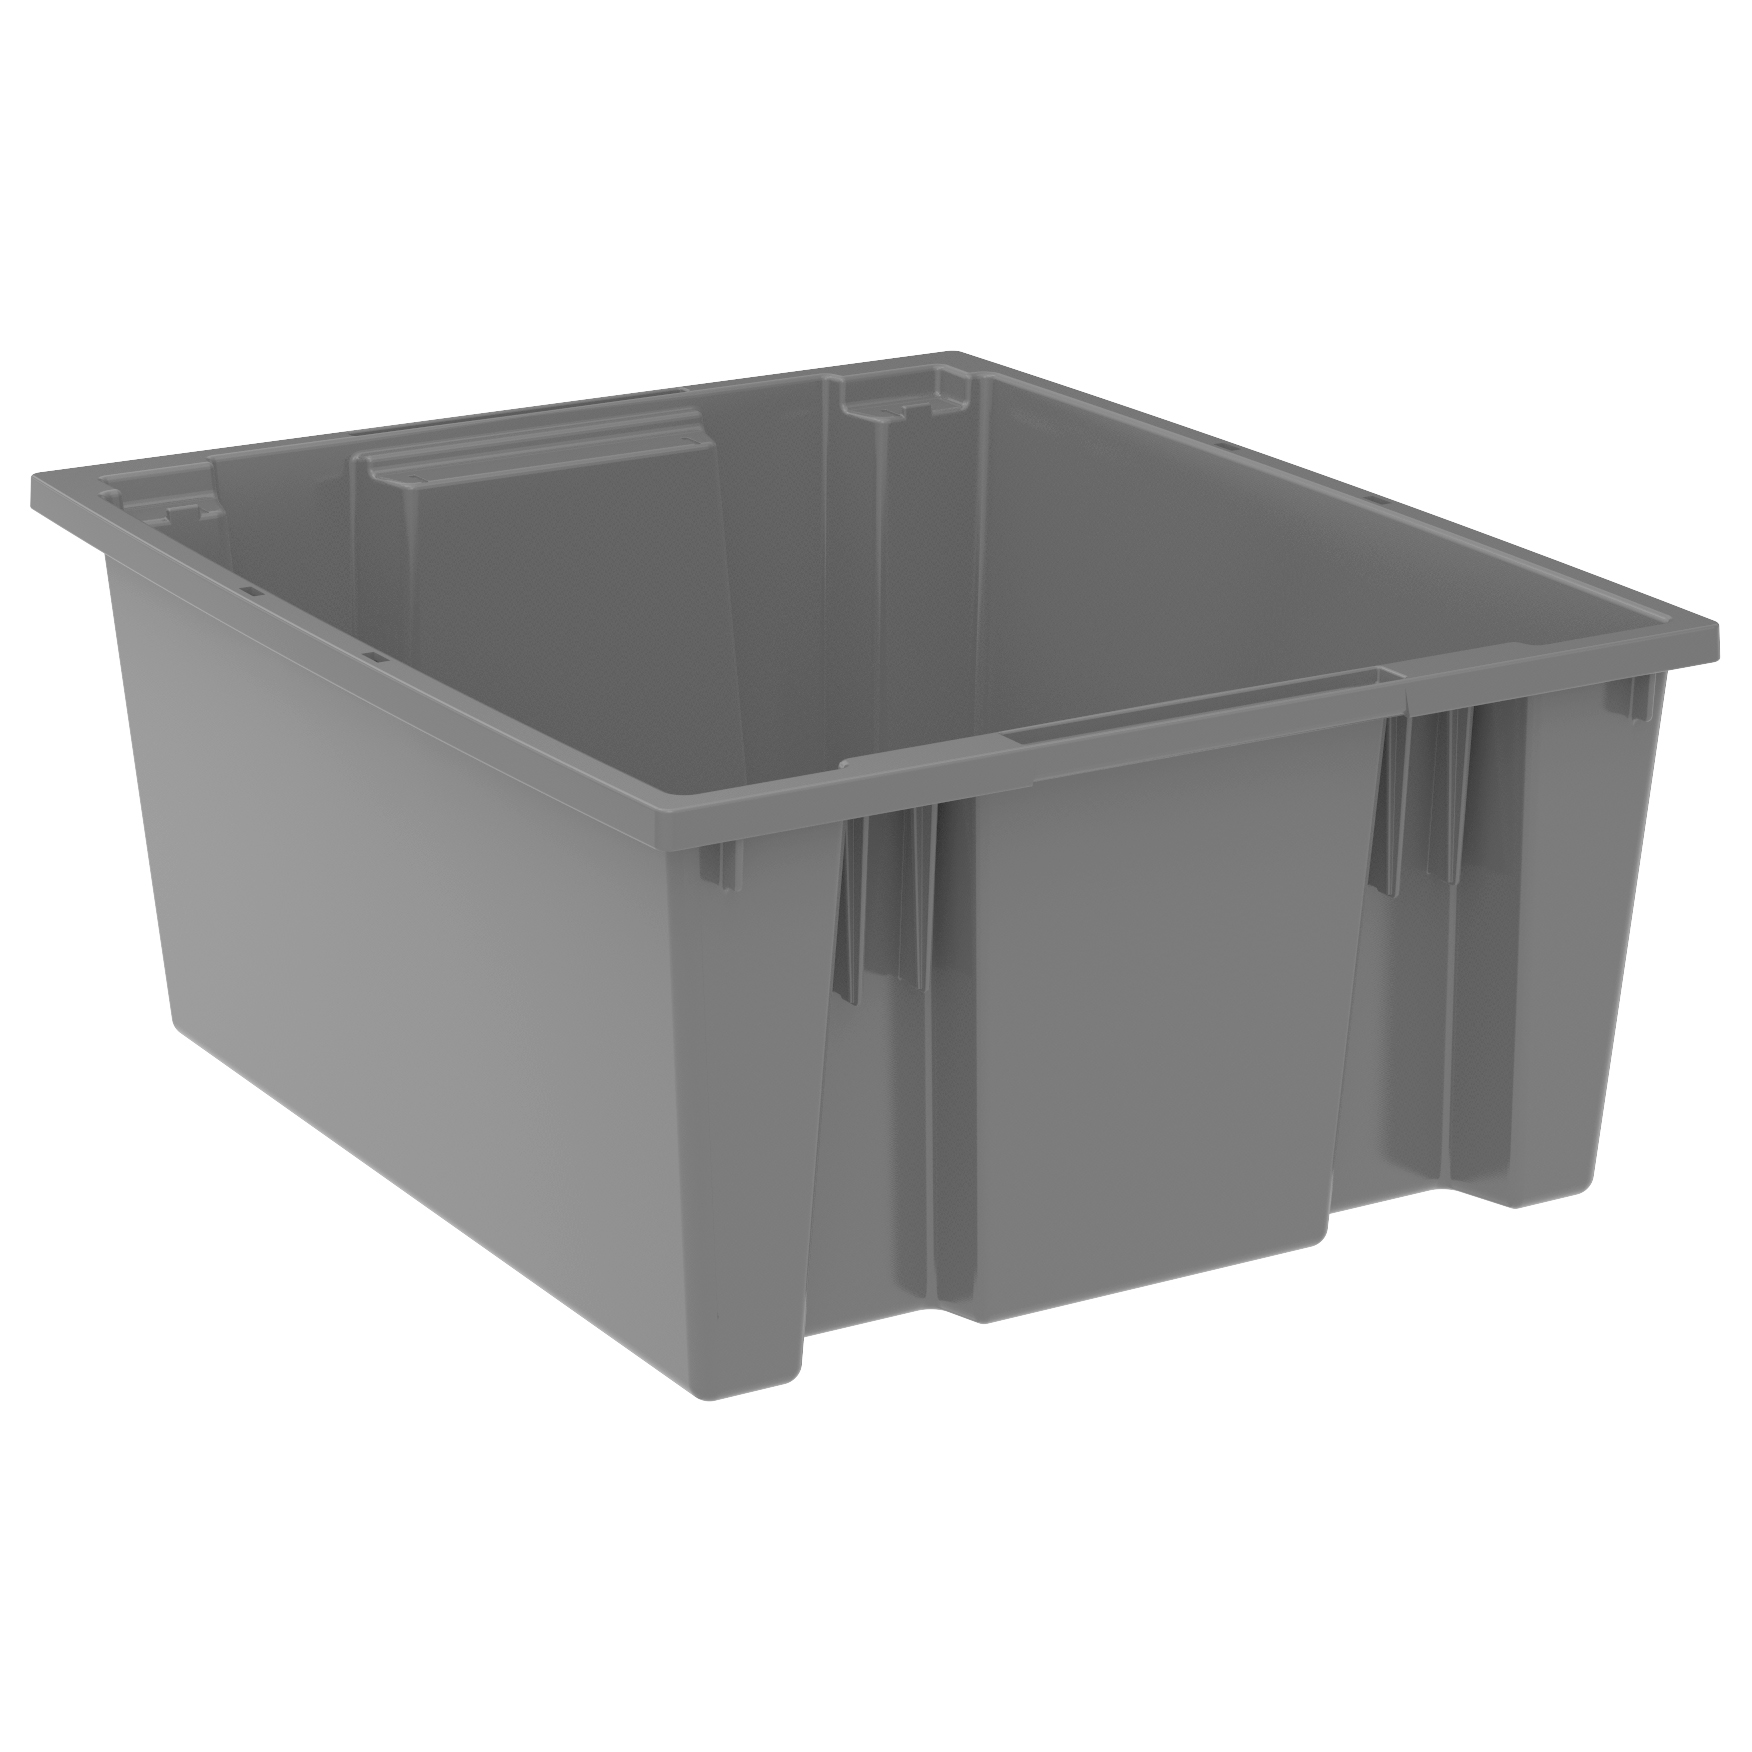 Nest & Stack Tote 23-1/2 x 19-1/2 x 10, Gray (35225GREY).  This item sold in carton quantities of 3.